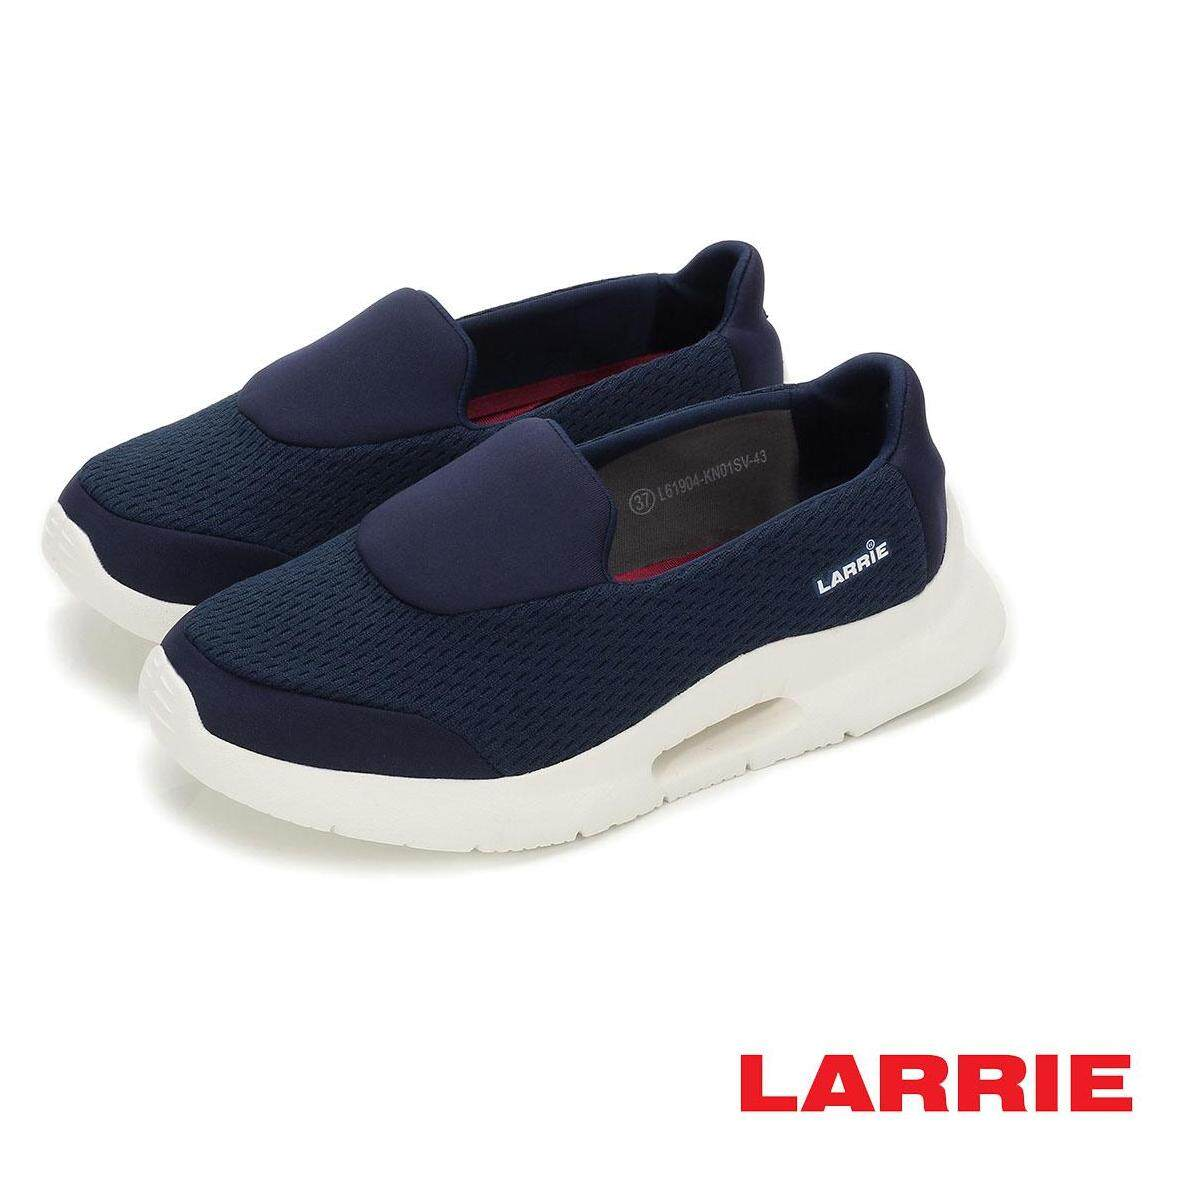 Larrie Lightweight Slip-On Casual Sporty Sneakers - L61904-KN01SV